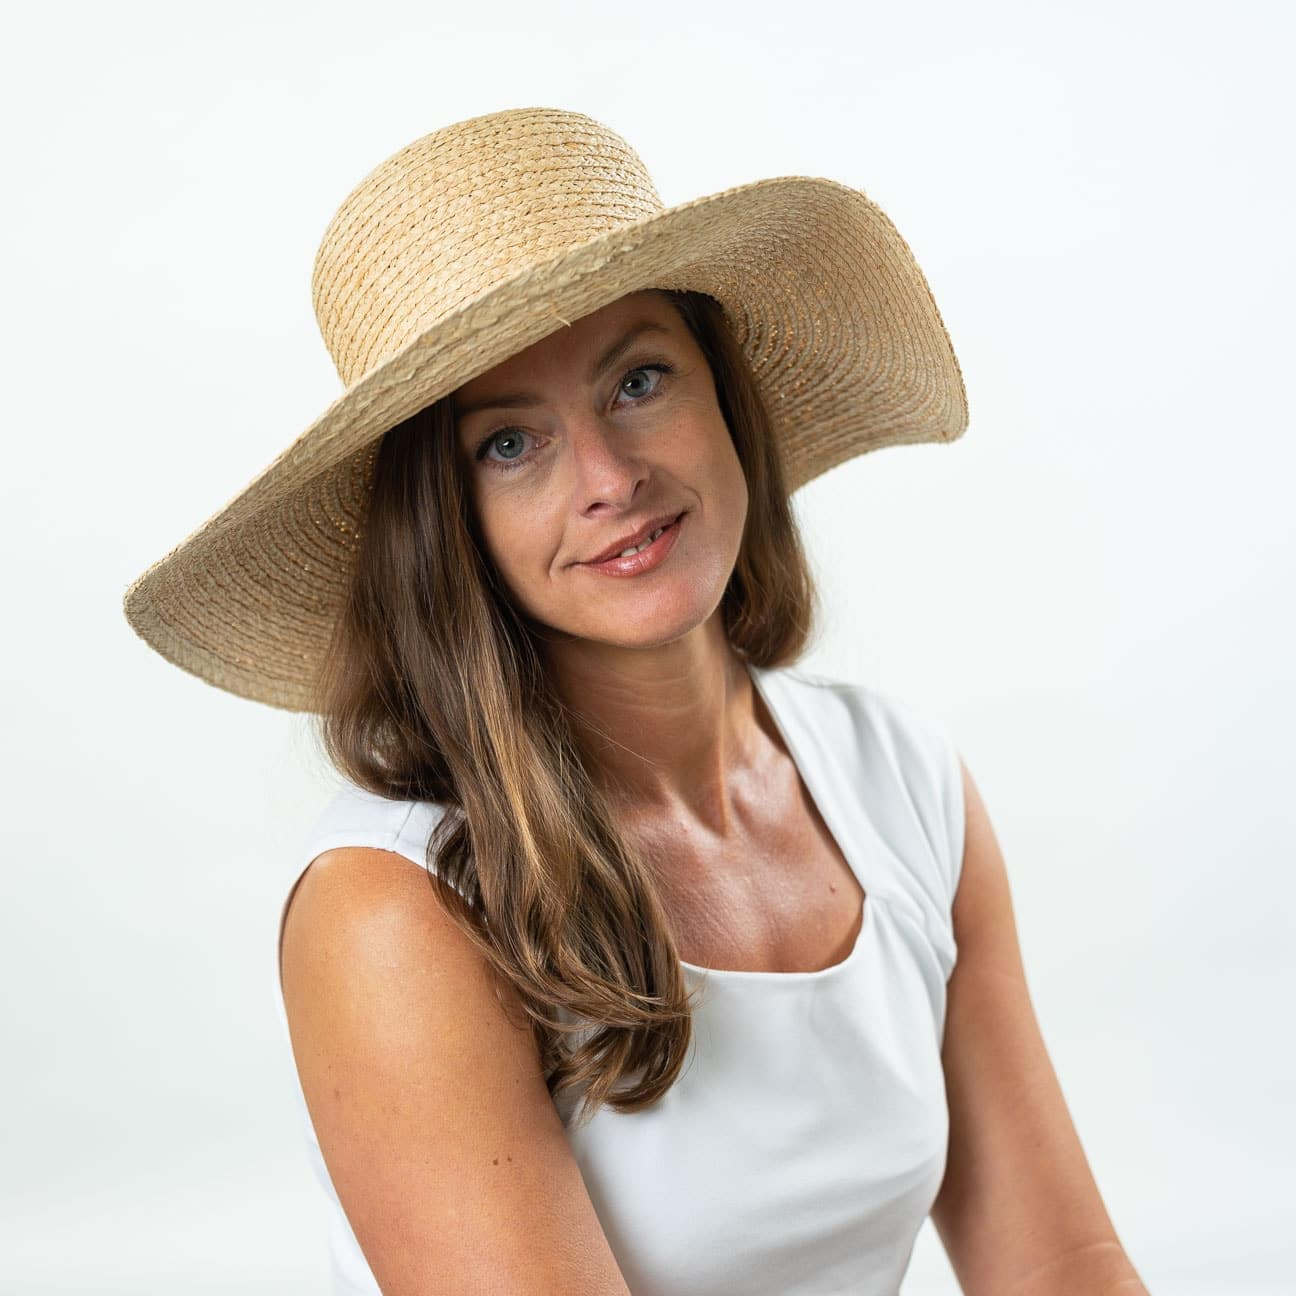 ... Women´s Raffia Straw Floppy Hat by Lierys - nature 4 ... 063d2d480eed